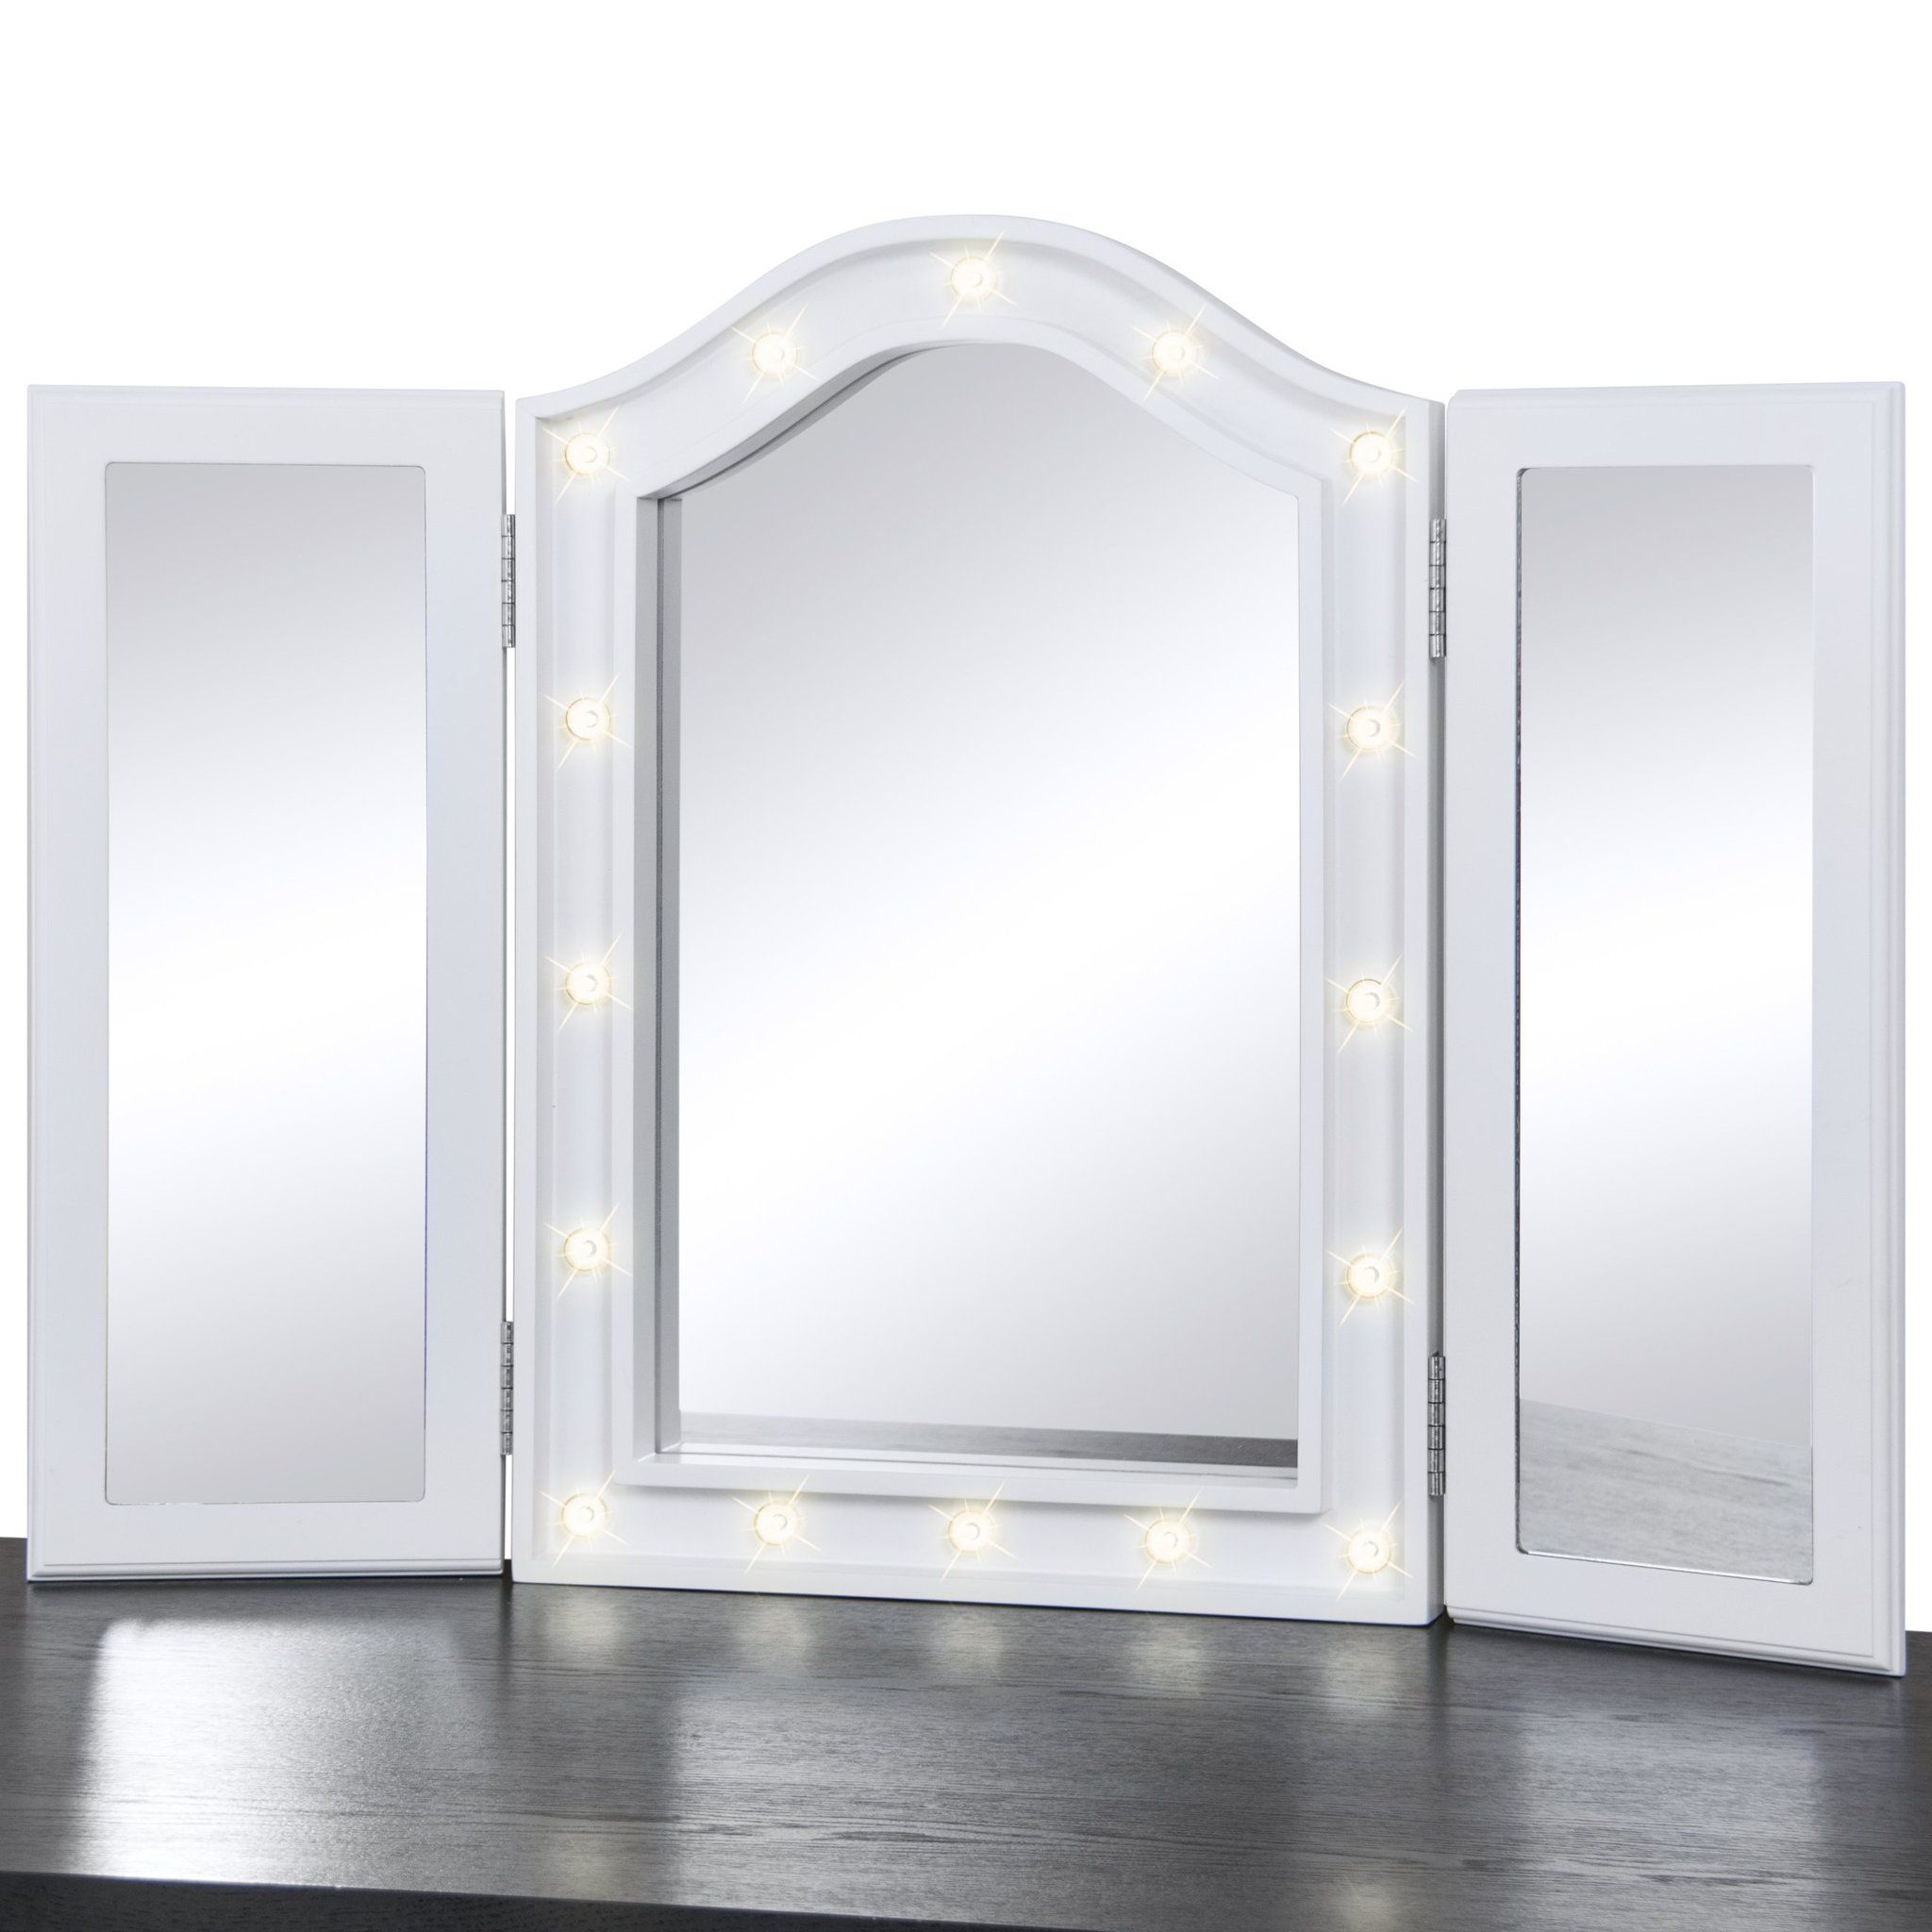 Tri Fold Vanity Mirror With Lights Classy Lit Tabletop Trifold Vanity Mirror W Led Lights  White  Tri Fold Decorating Design